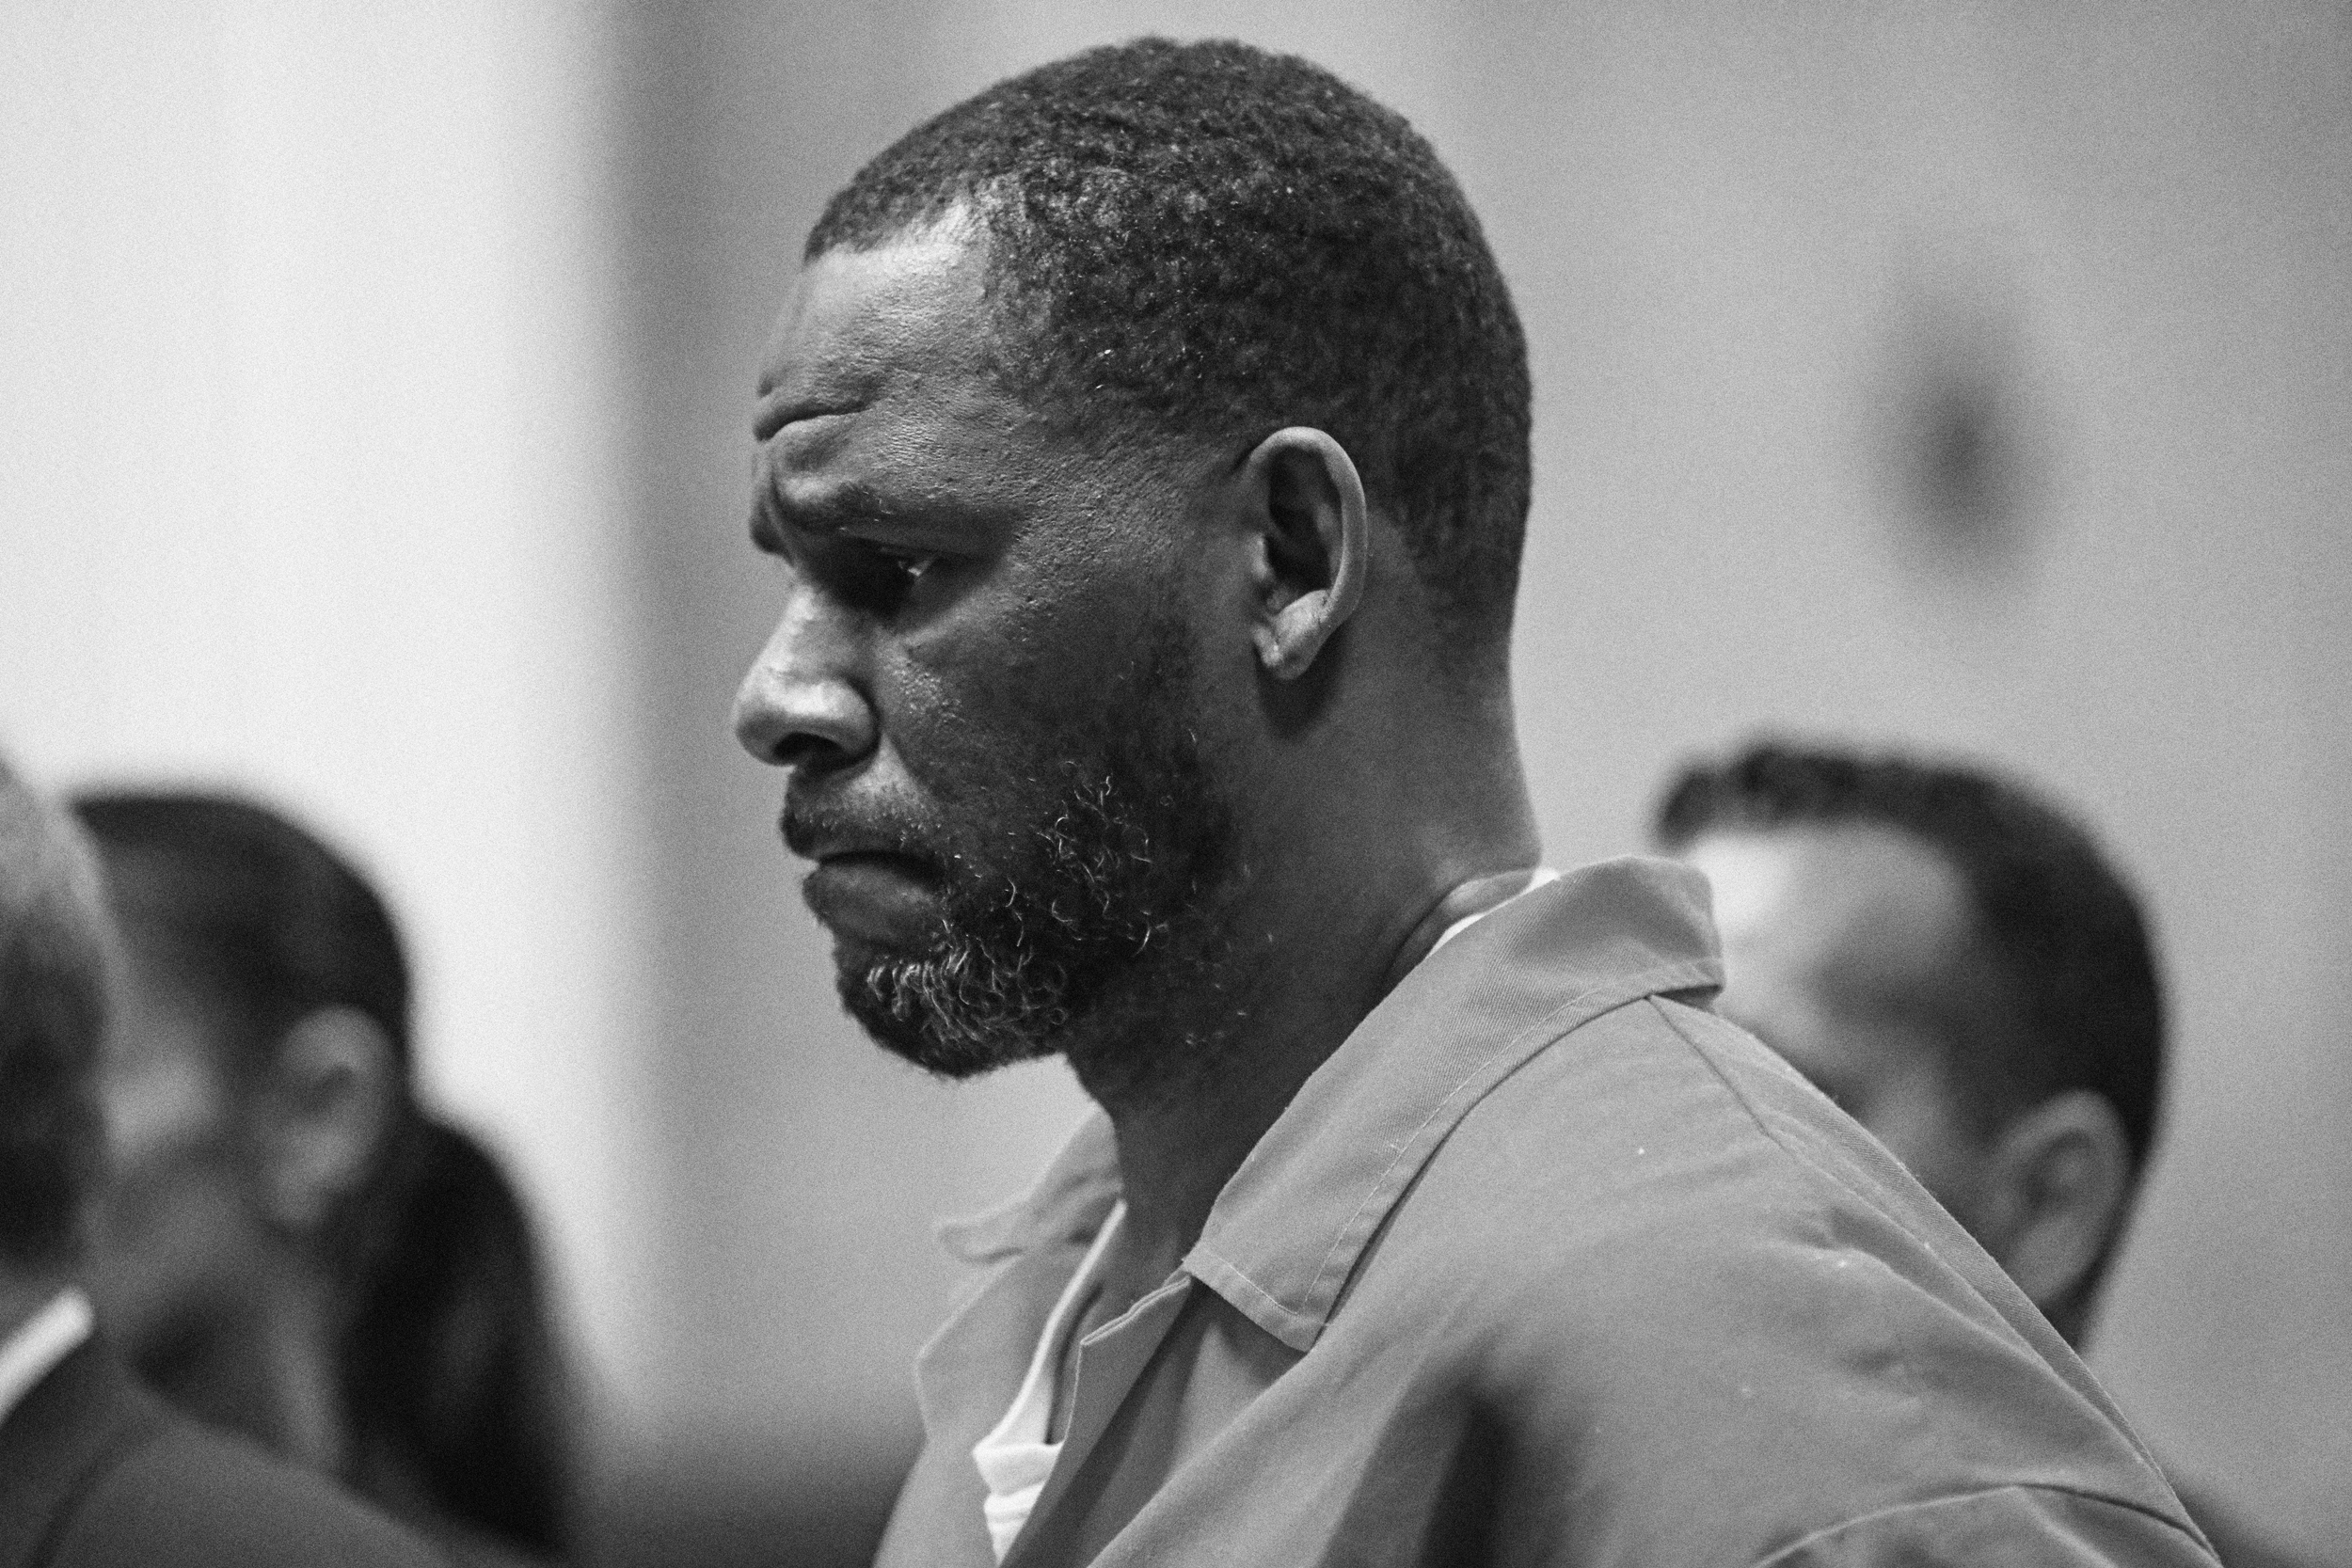 R. Kelly faces decades in prison if he's convicted in a new trial. Here's what to know.